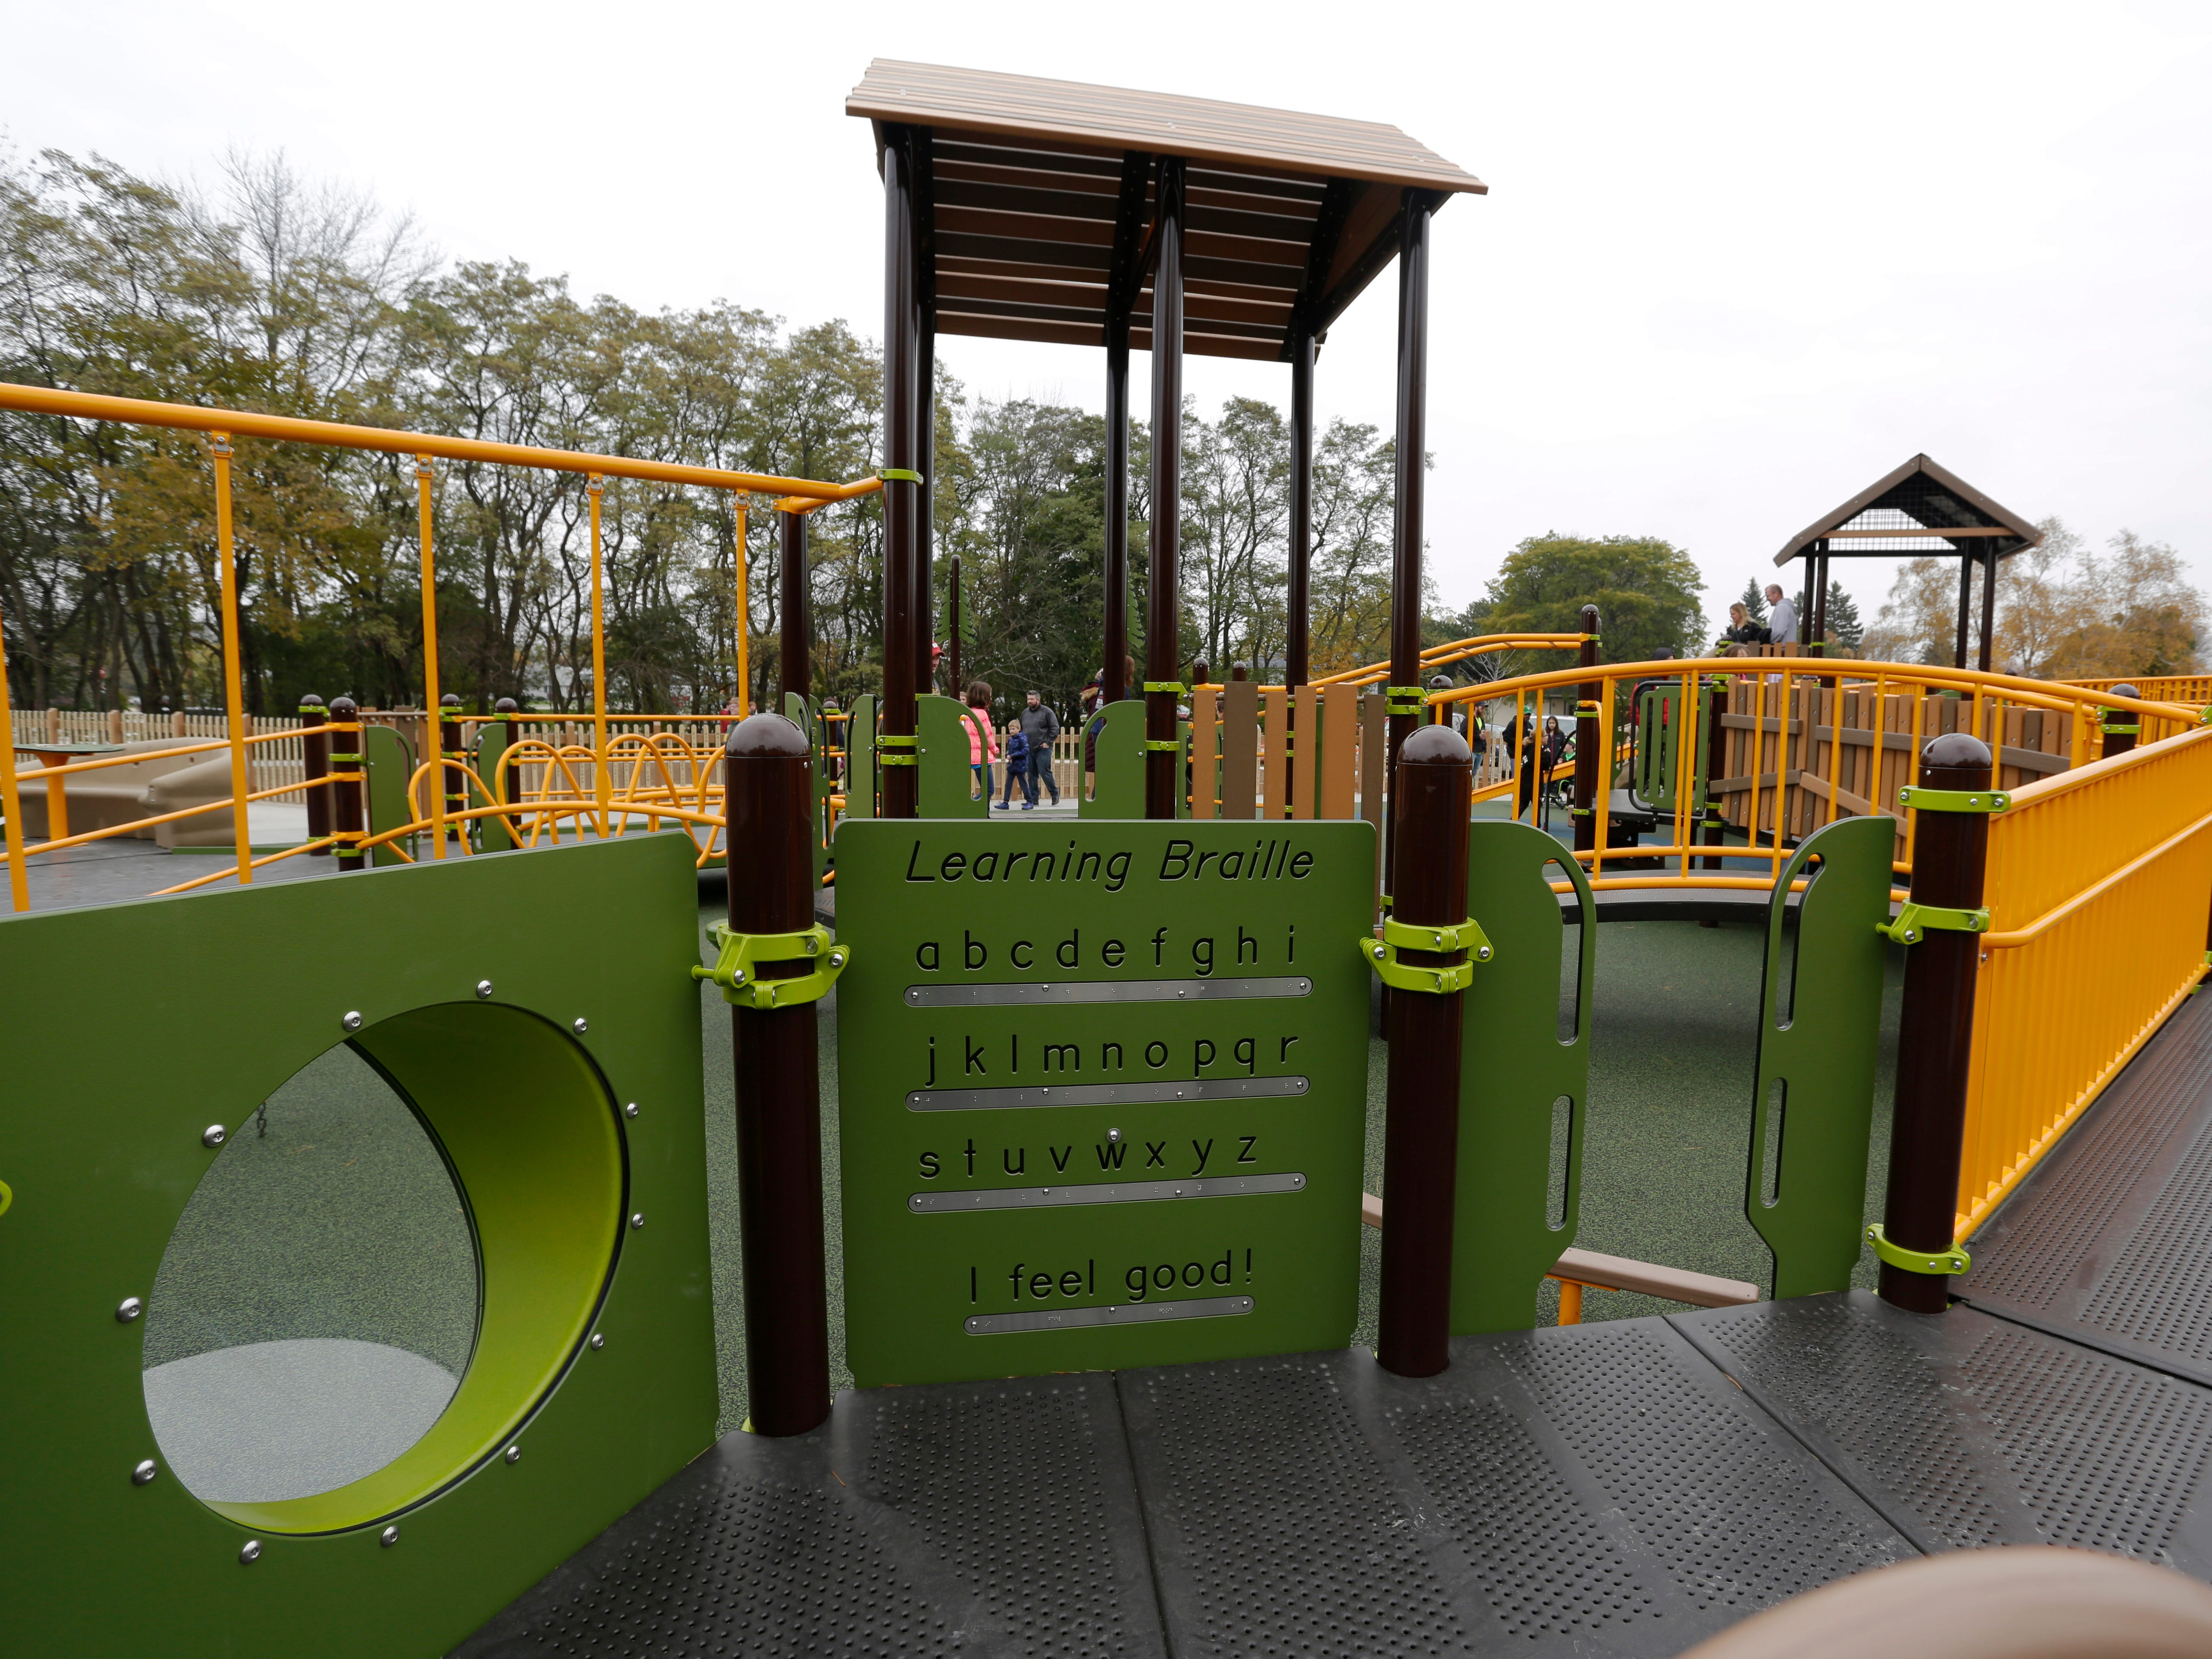 Some of the adaptive features at the Shaw Family Playground include braille, Saturday, September 27, 2018, in Sheboygan, Wis. The playground held a ribbon cutting event to showcase the adaptive playground that is accessible for children of all physical abilities.